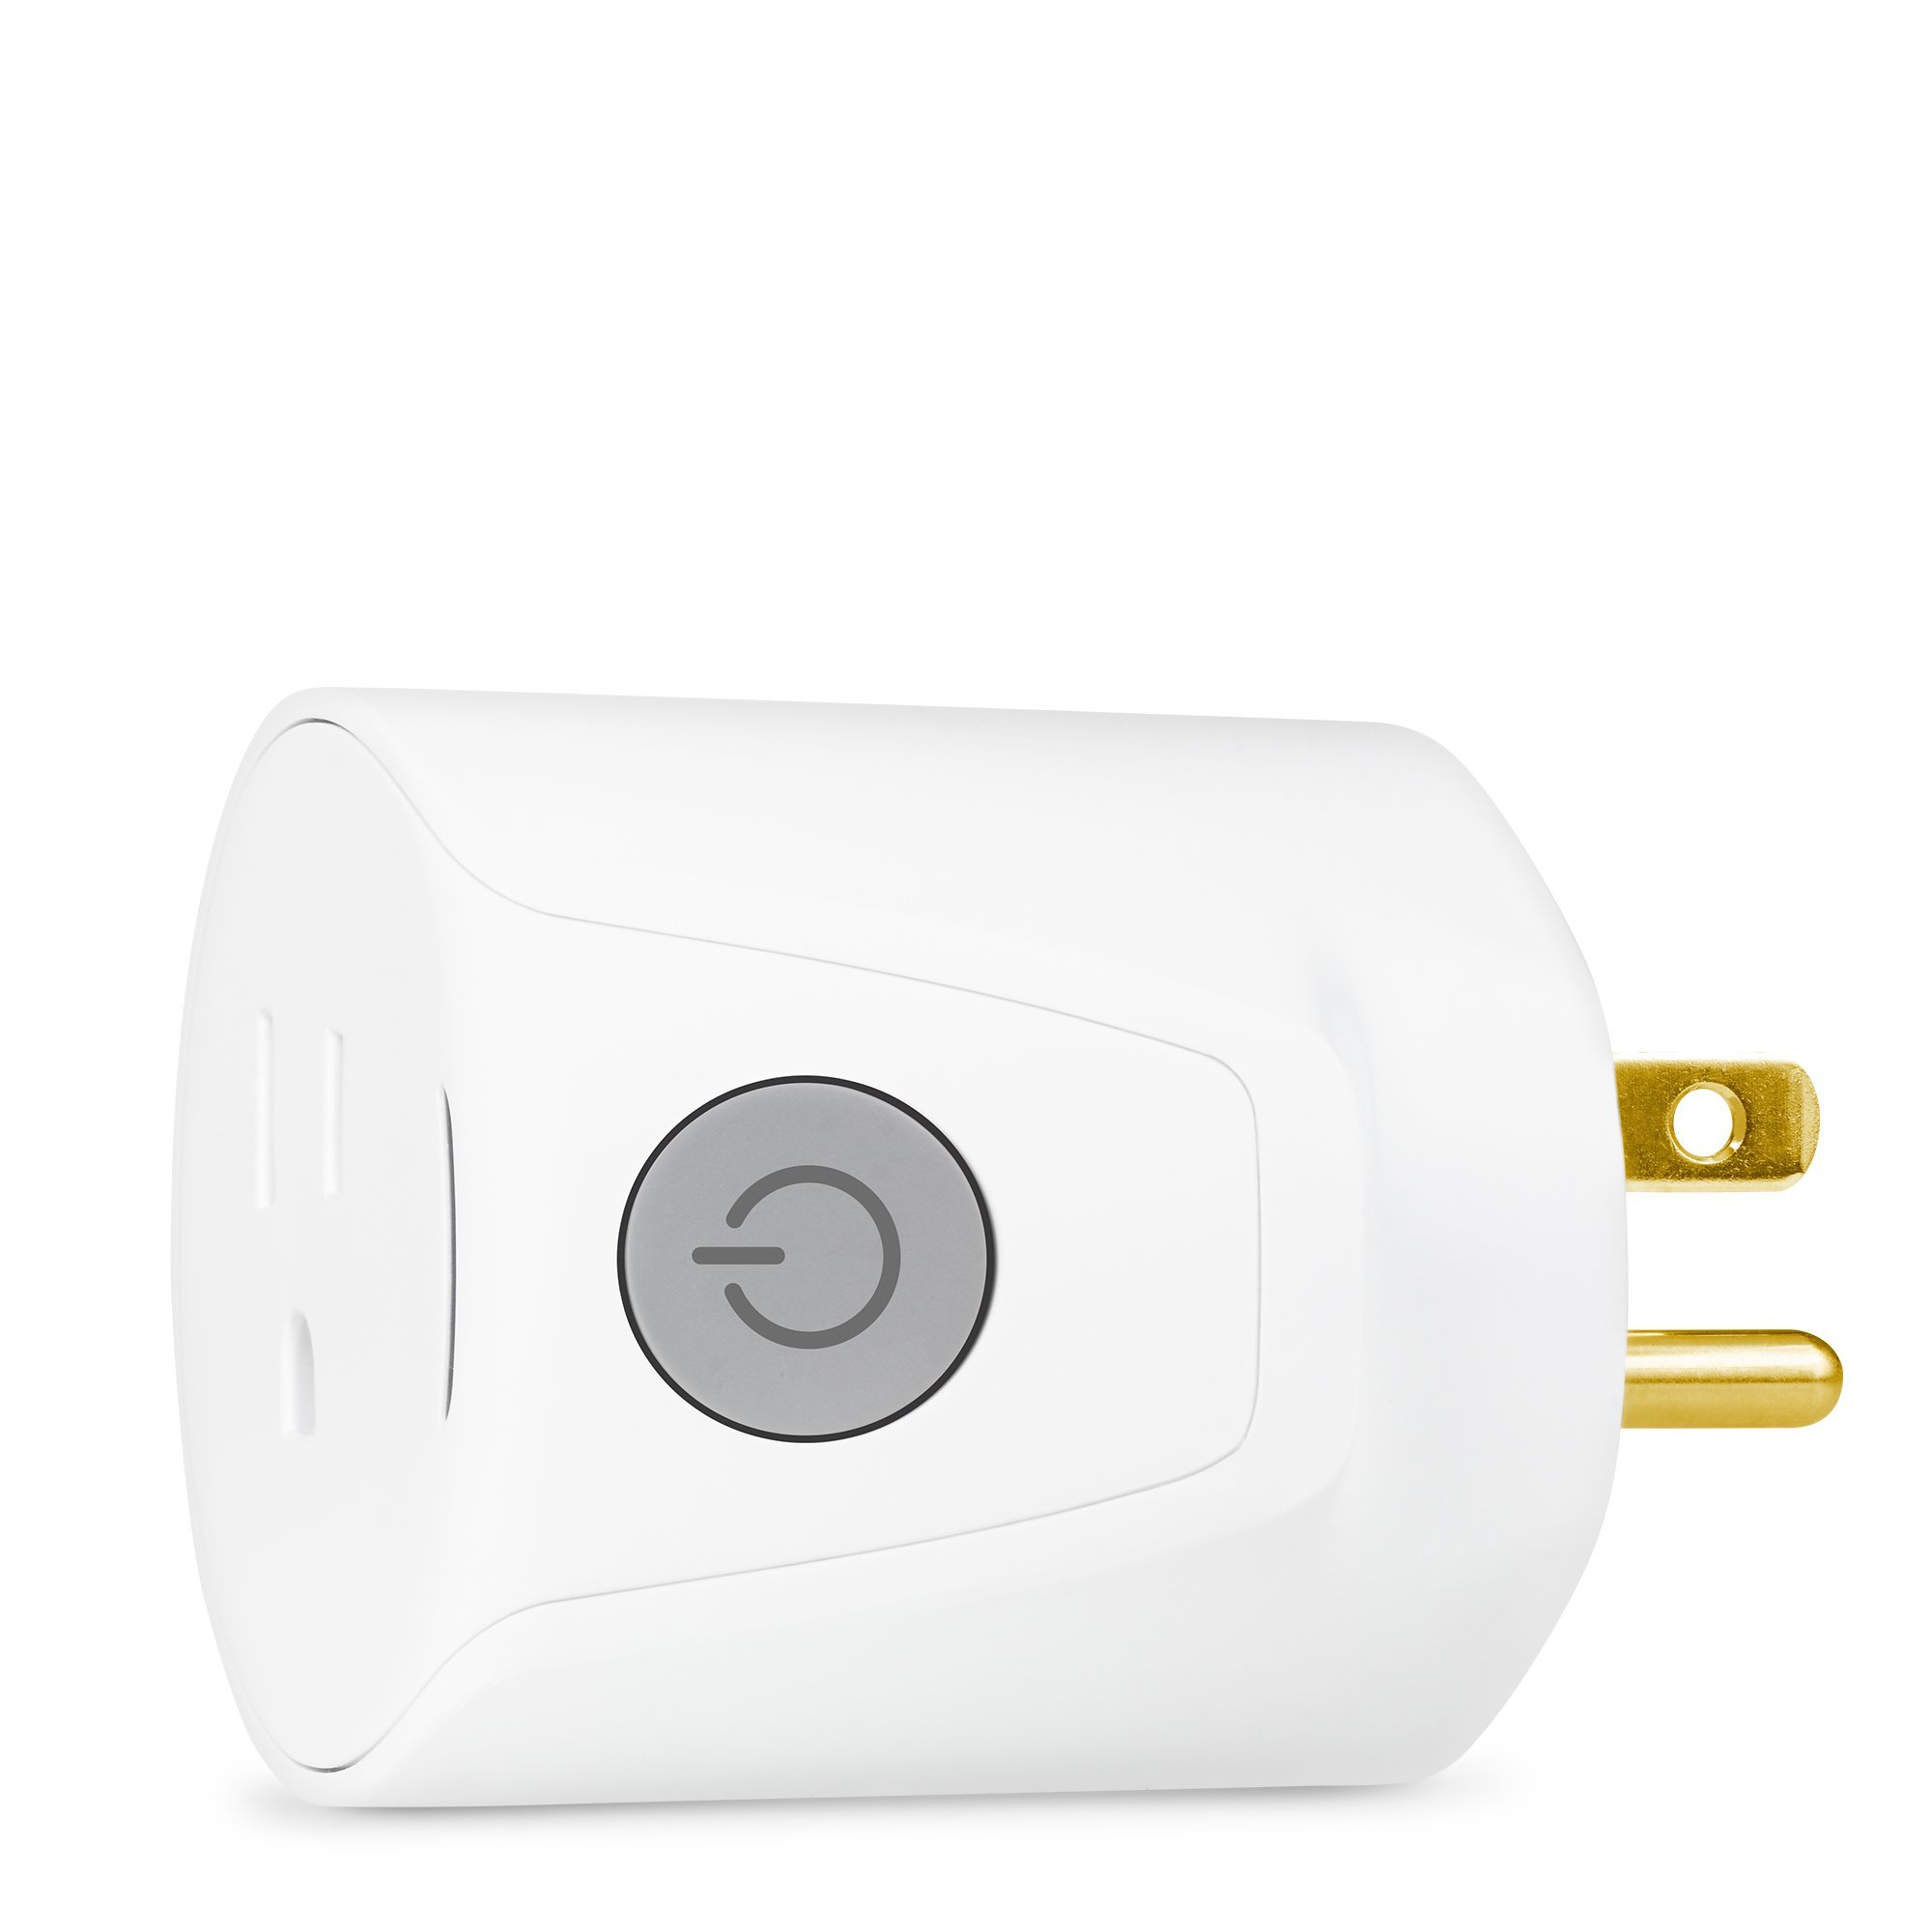 Samsung  F-OUT-US-2 SmartThings Outlet, White by Samsung SmartThings (Image #3)